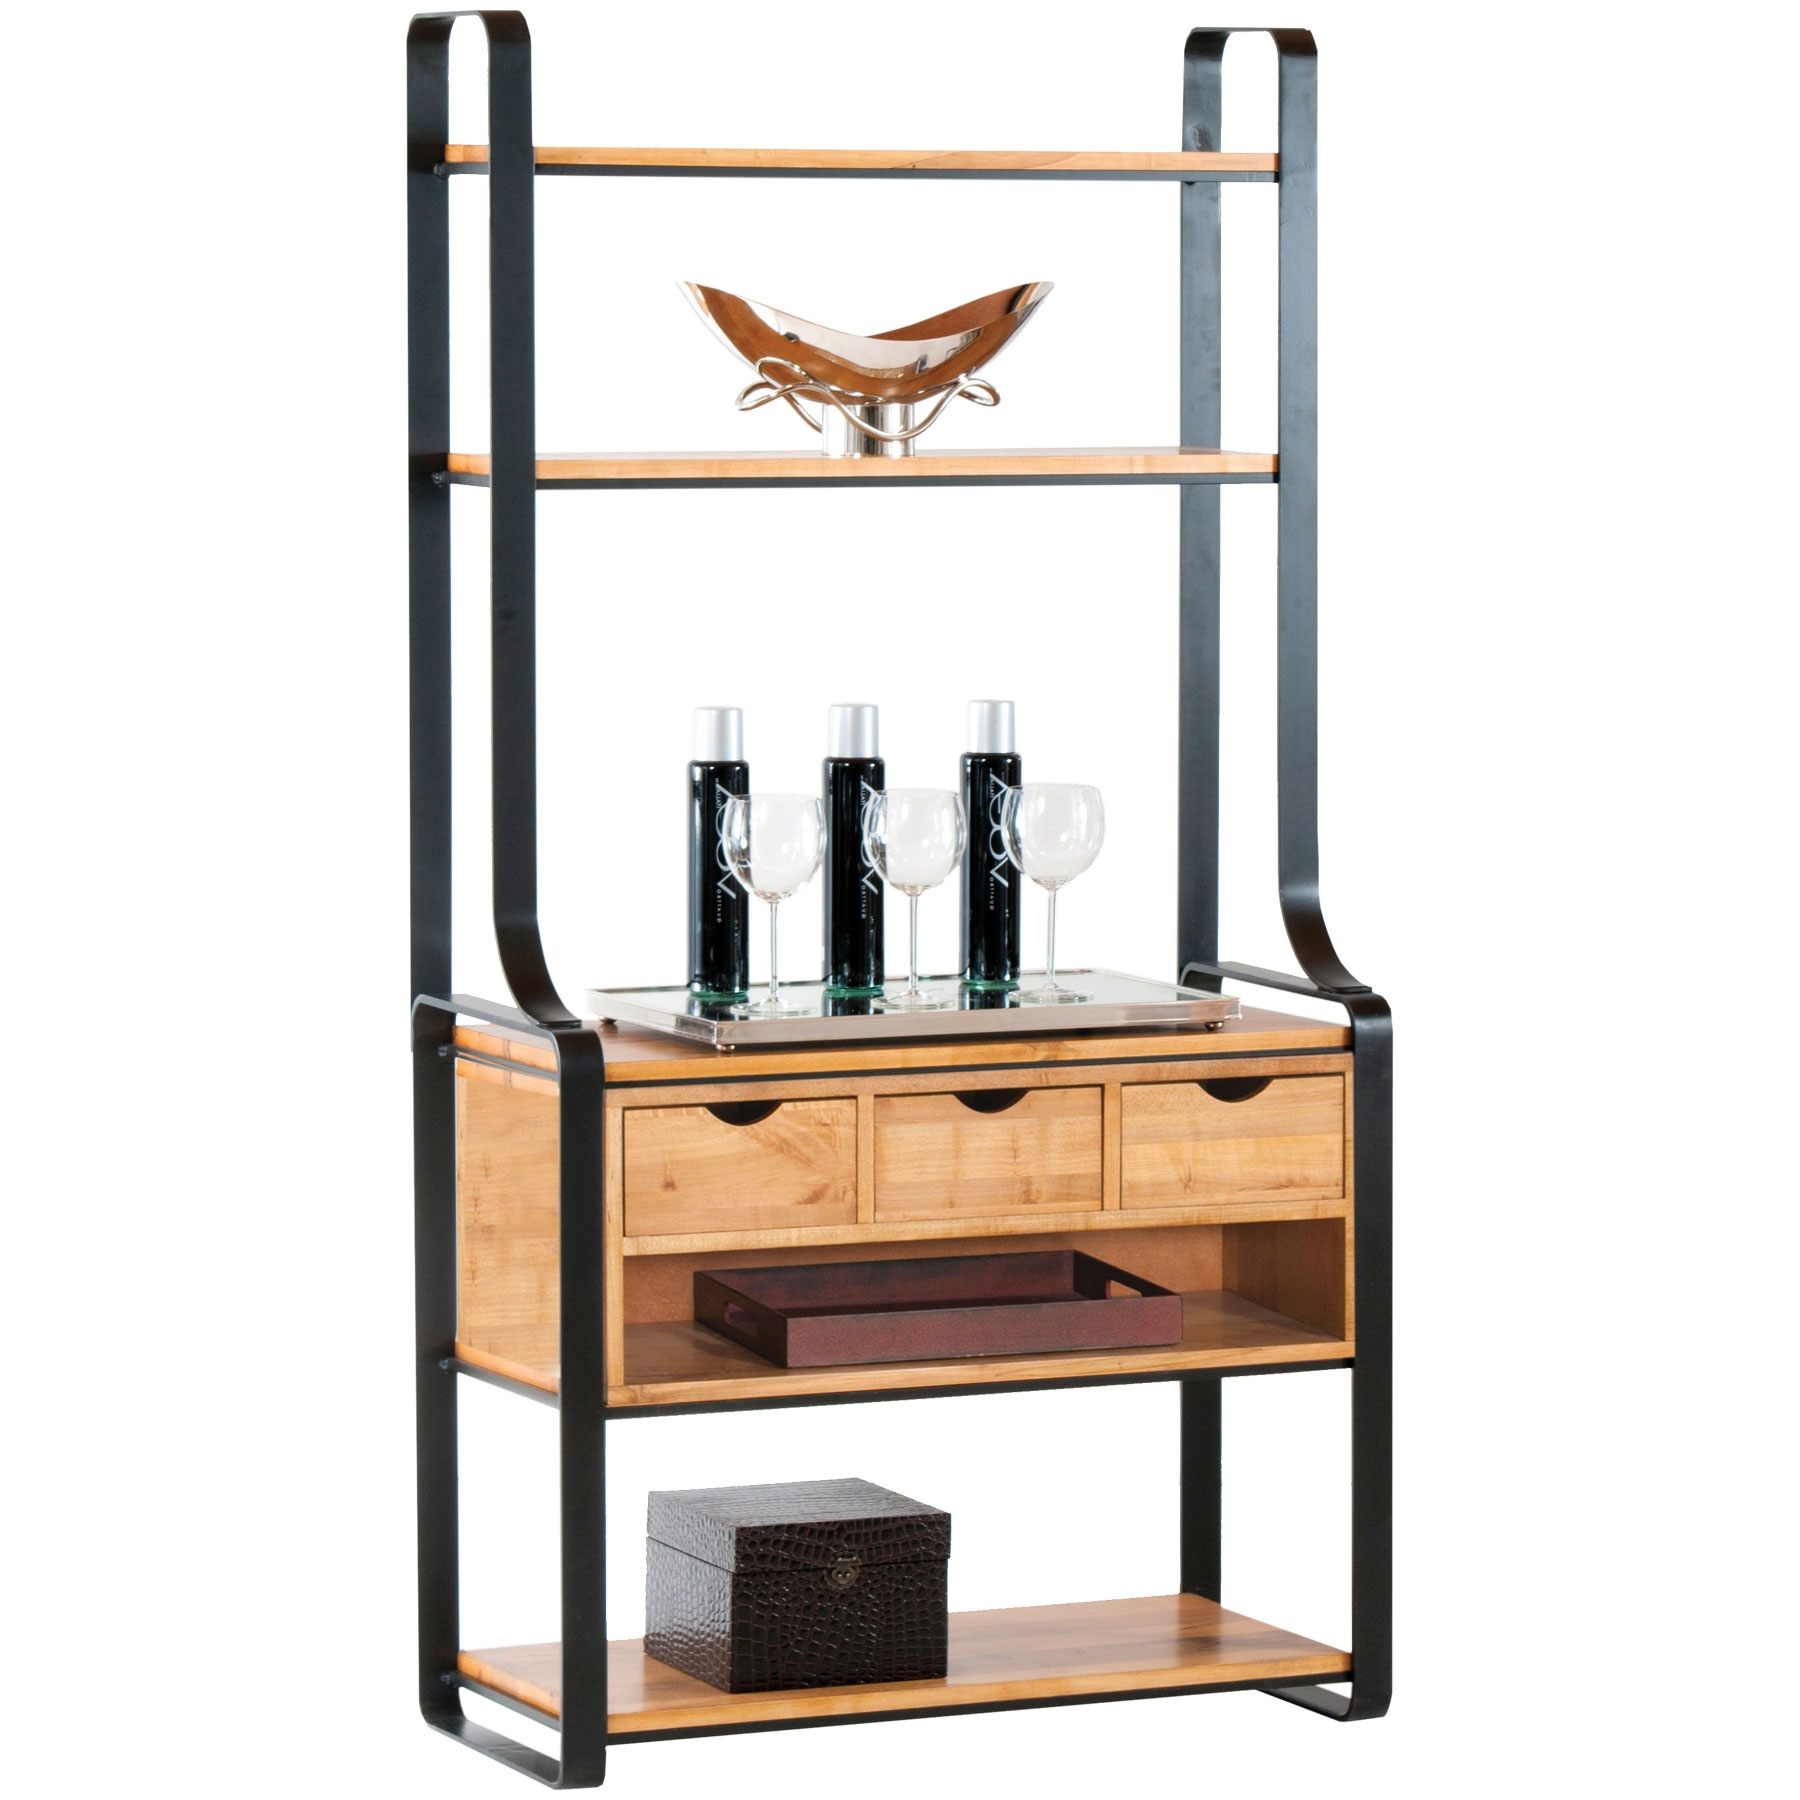 pictured here is the kenley 3 drawer bakers rack in charcoal finish with maple shelves and 24. Black Bedroom Furniture Sets. Home Design Ideas